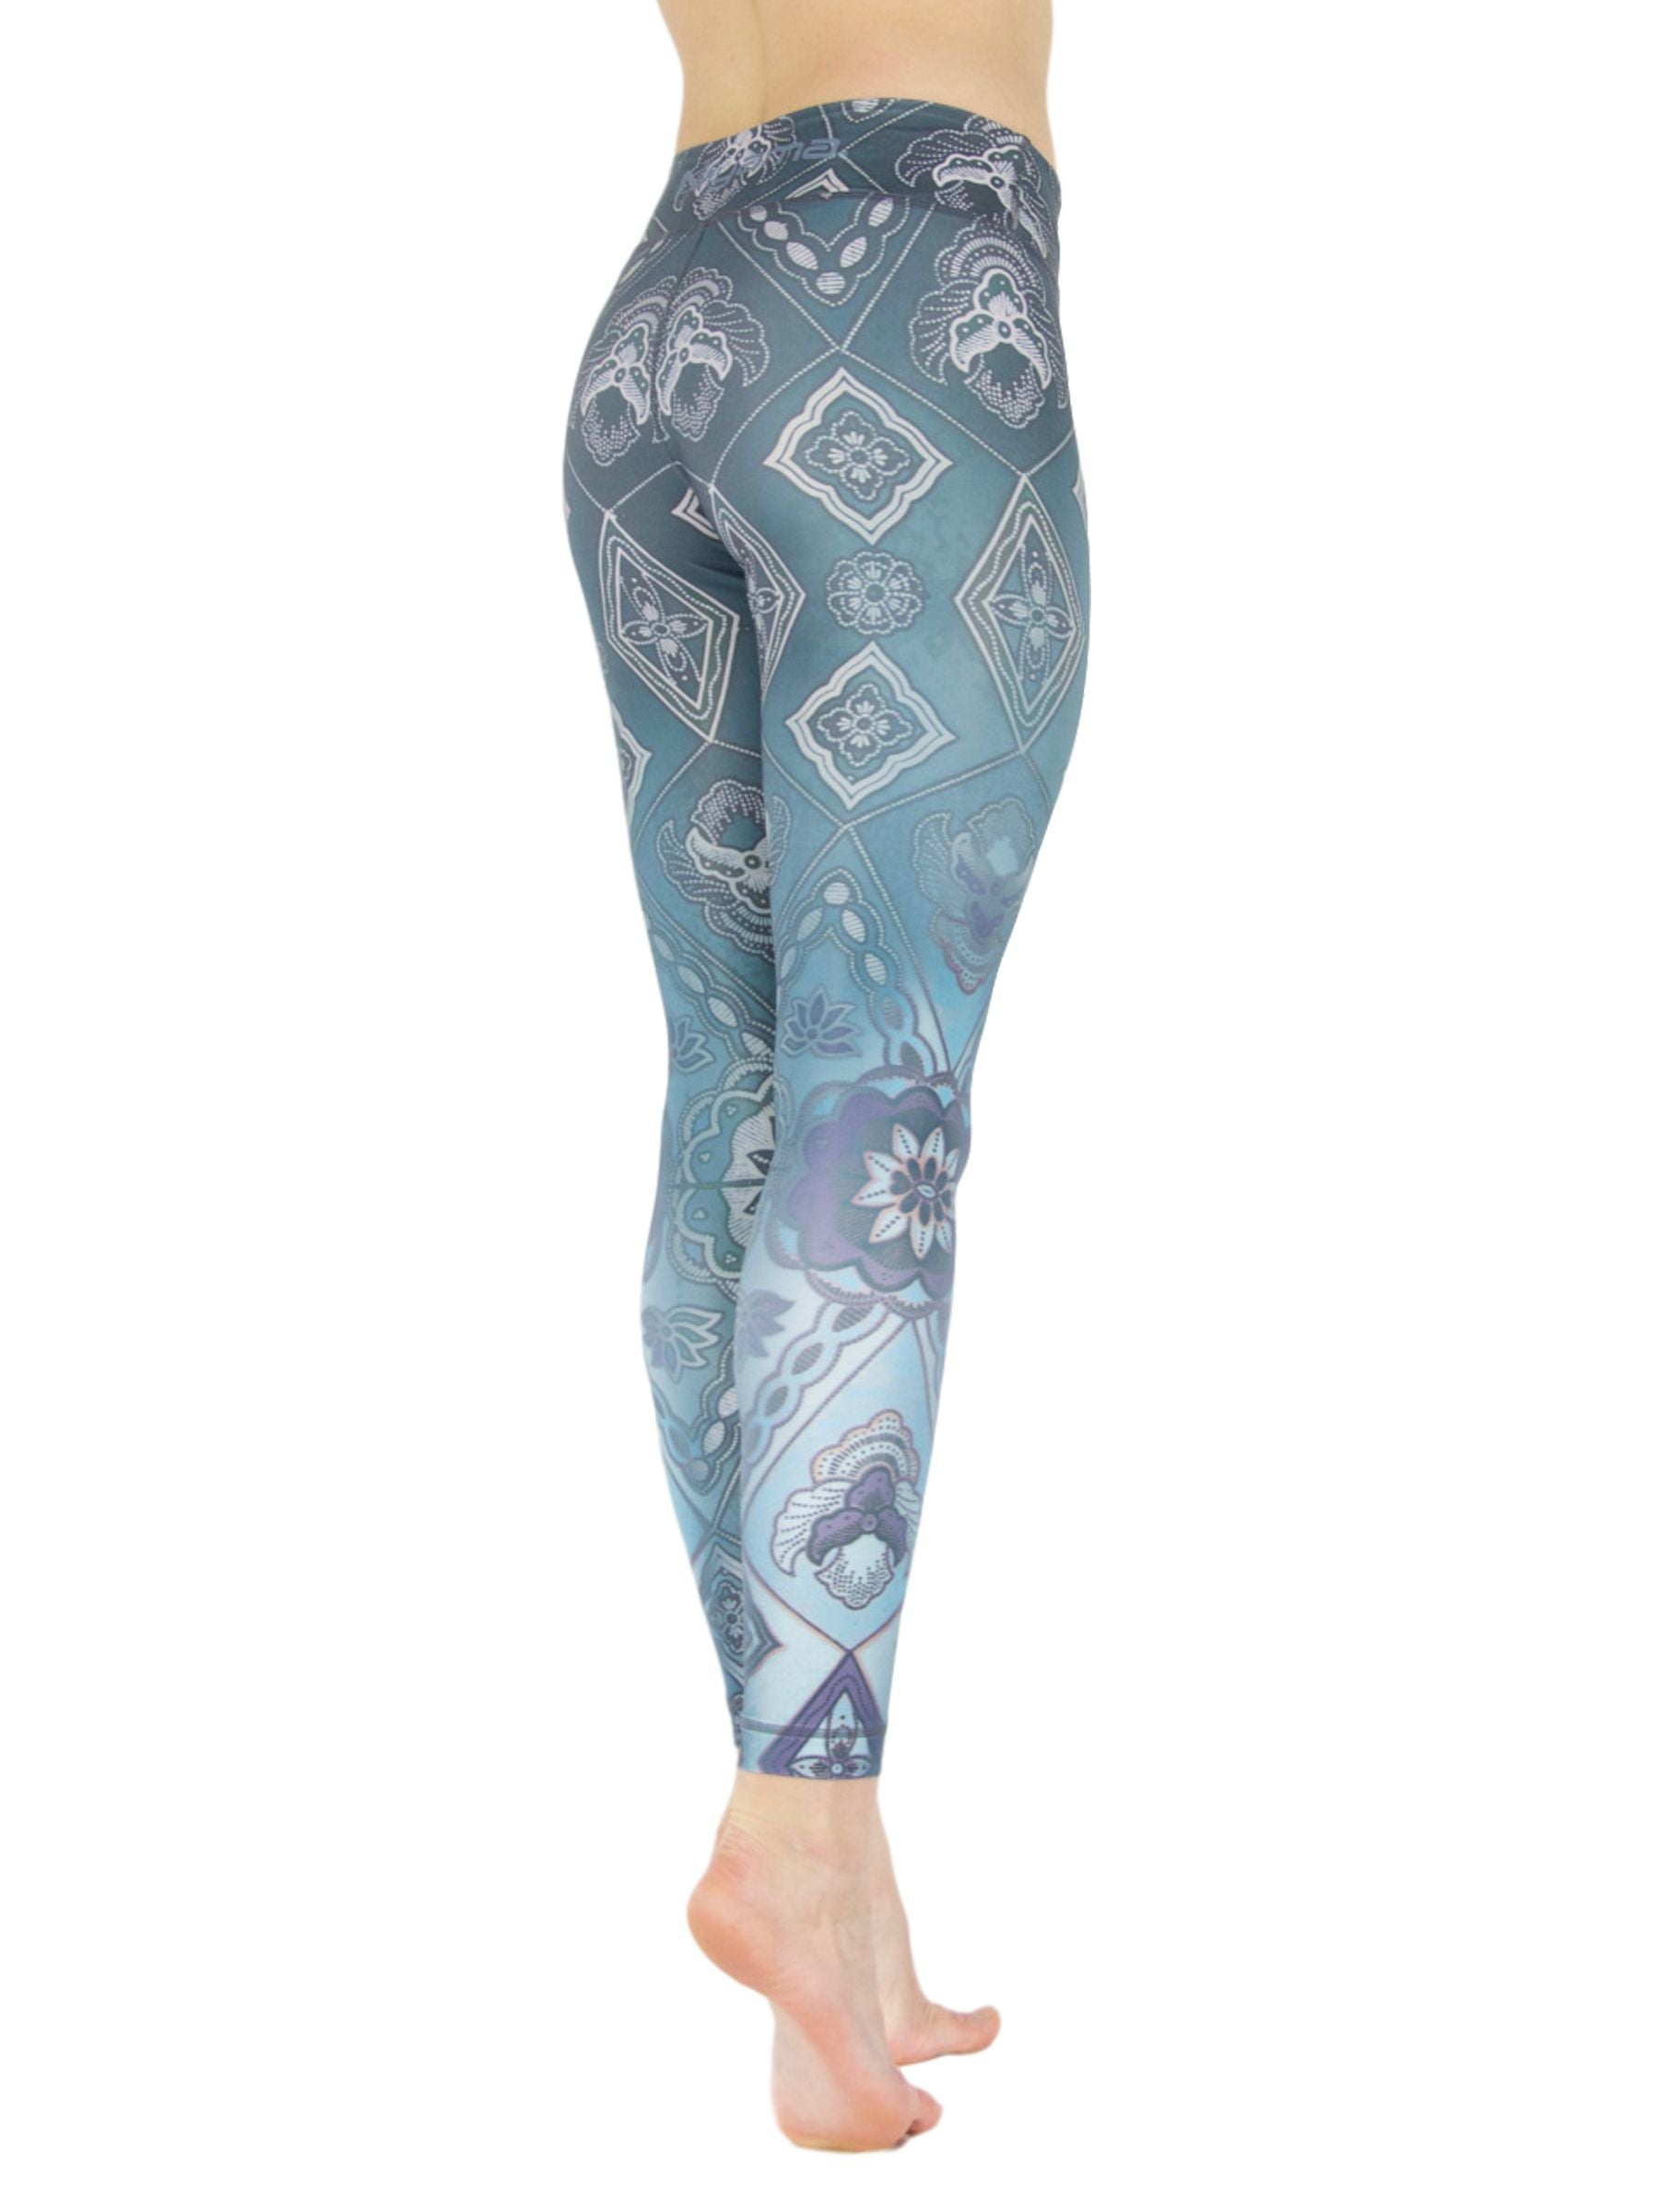 Caleidoscope by Niyama - High Quality, Yoga Legging for Movement Artists.